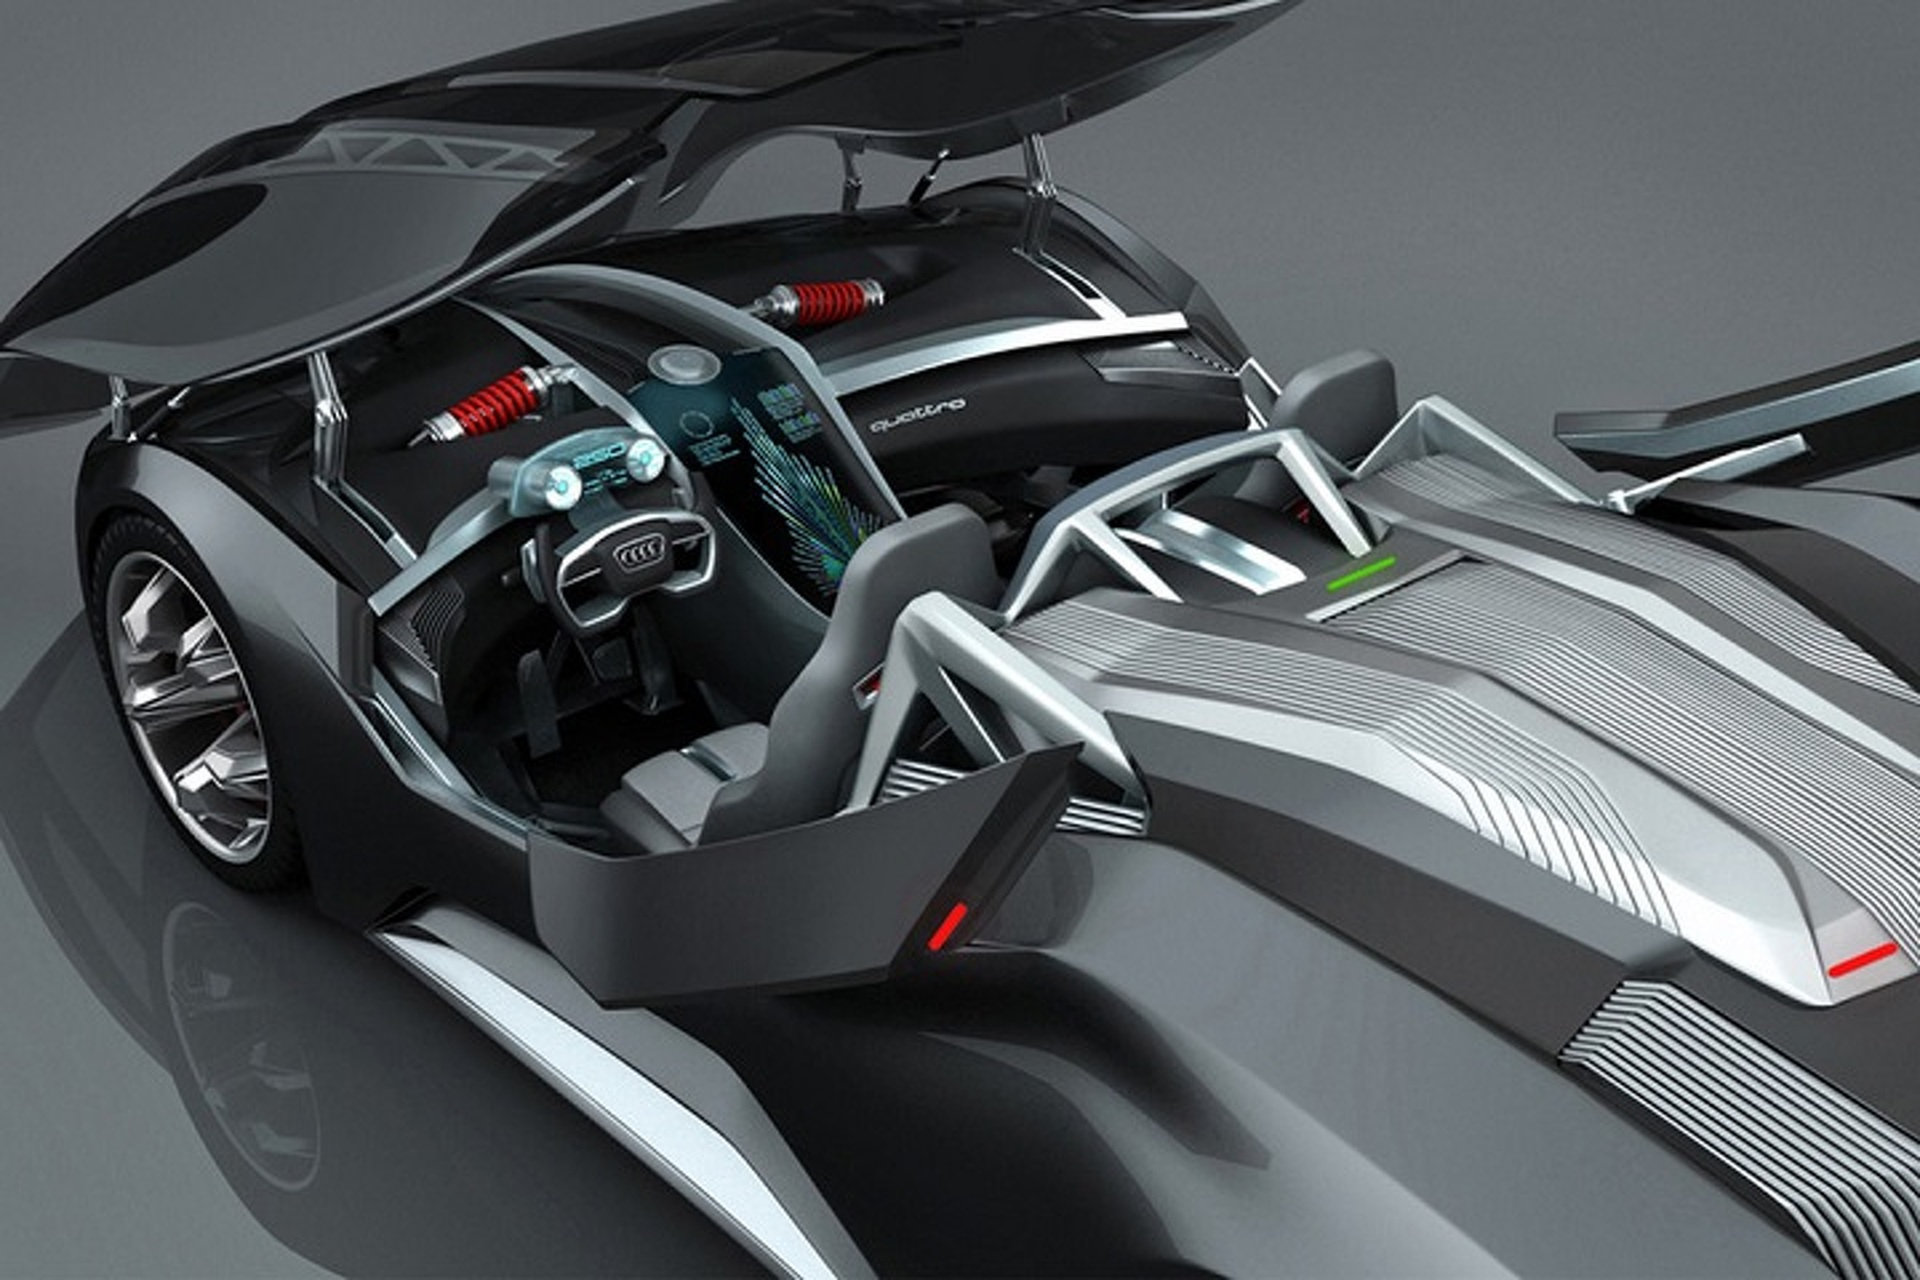 Audi F-Tron Concept is a Nuclear-Powered Glimpse of the Future